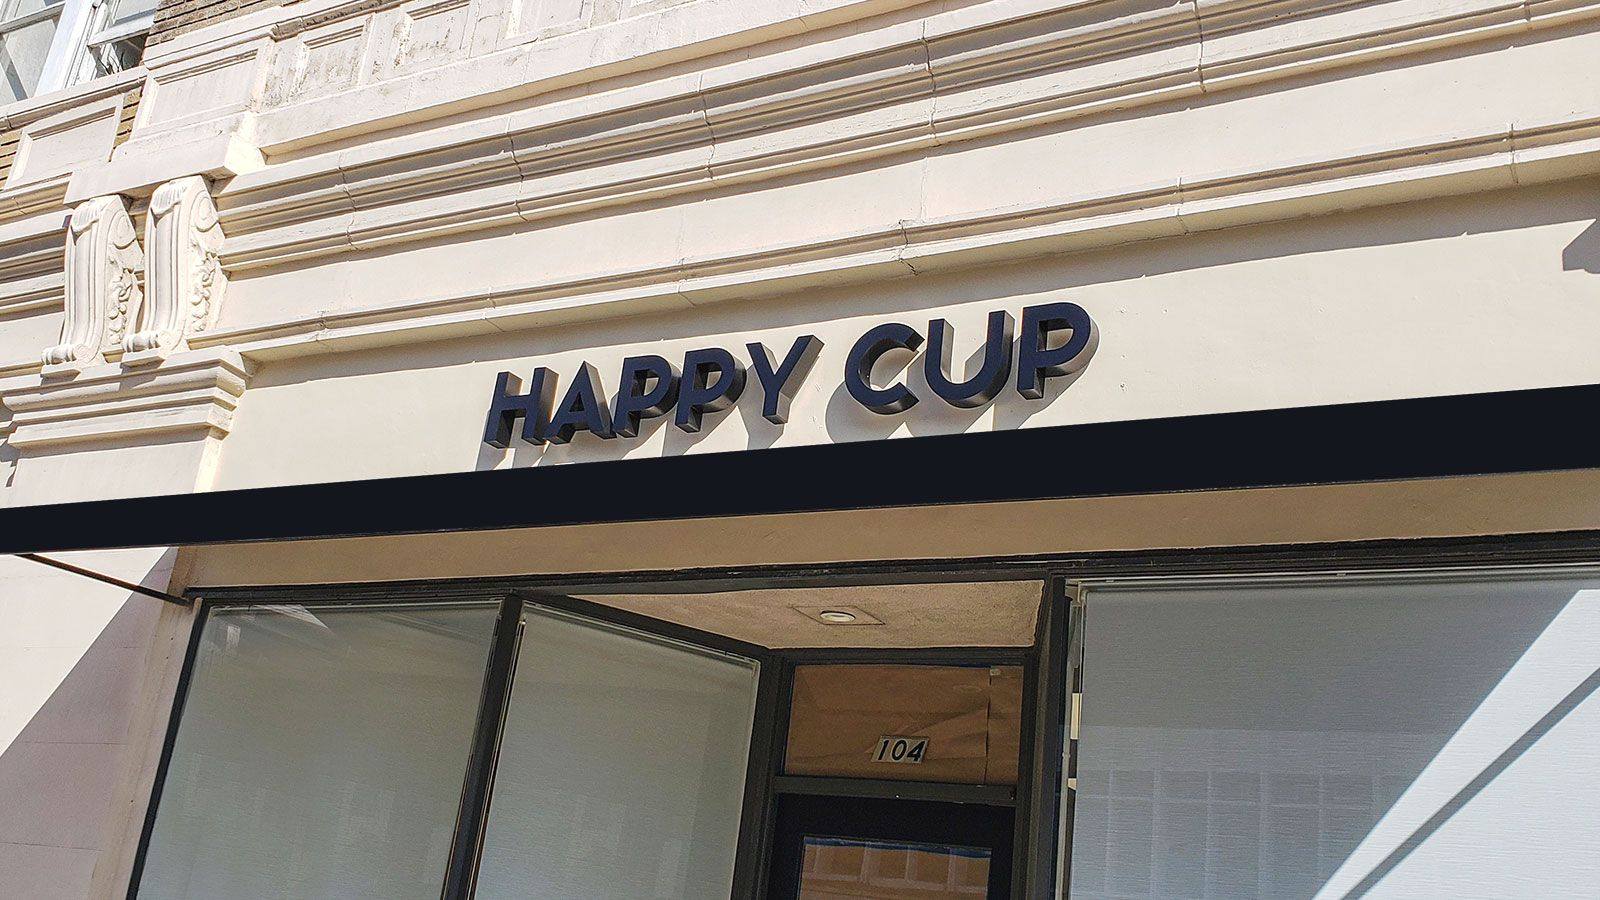 Happy cup channel letters